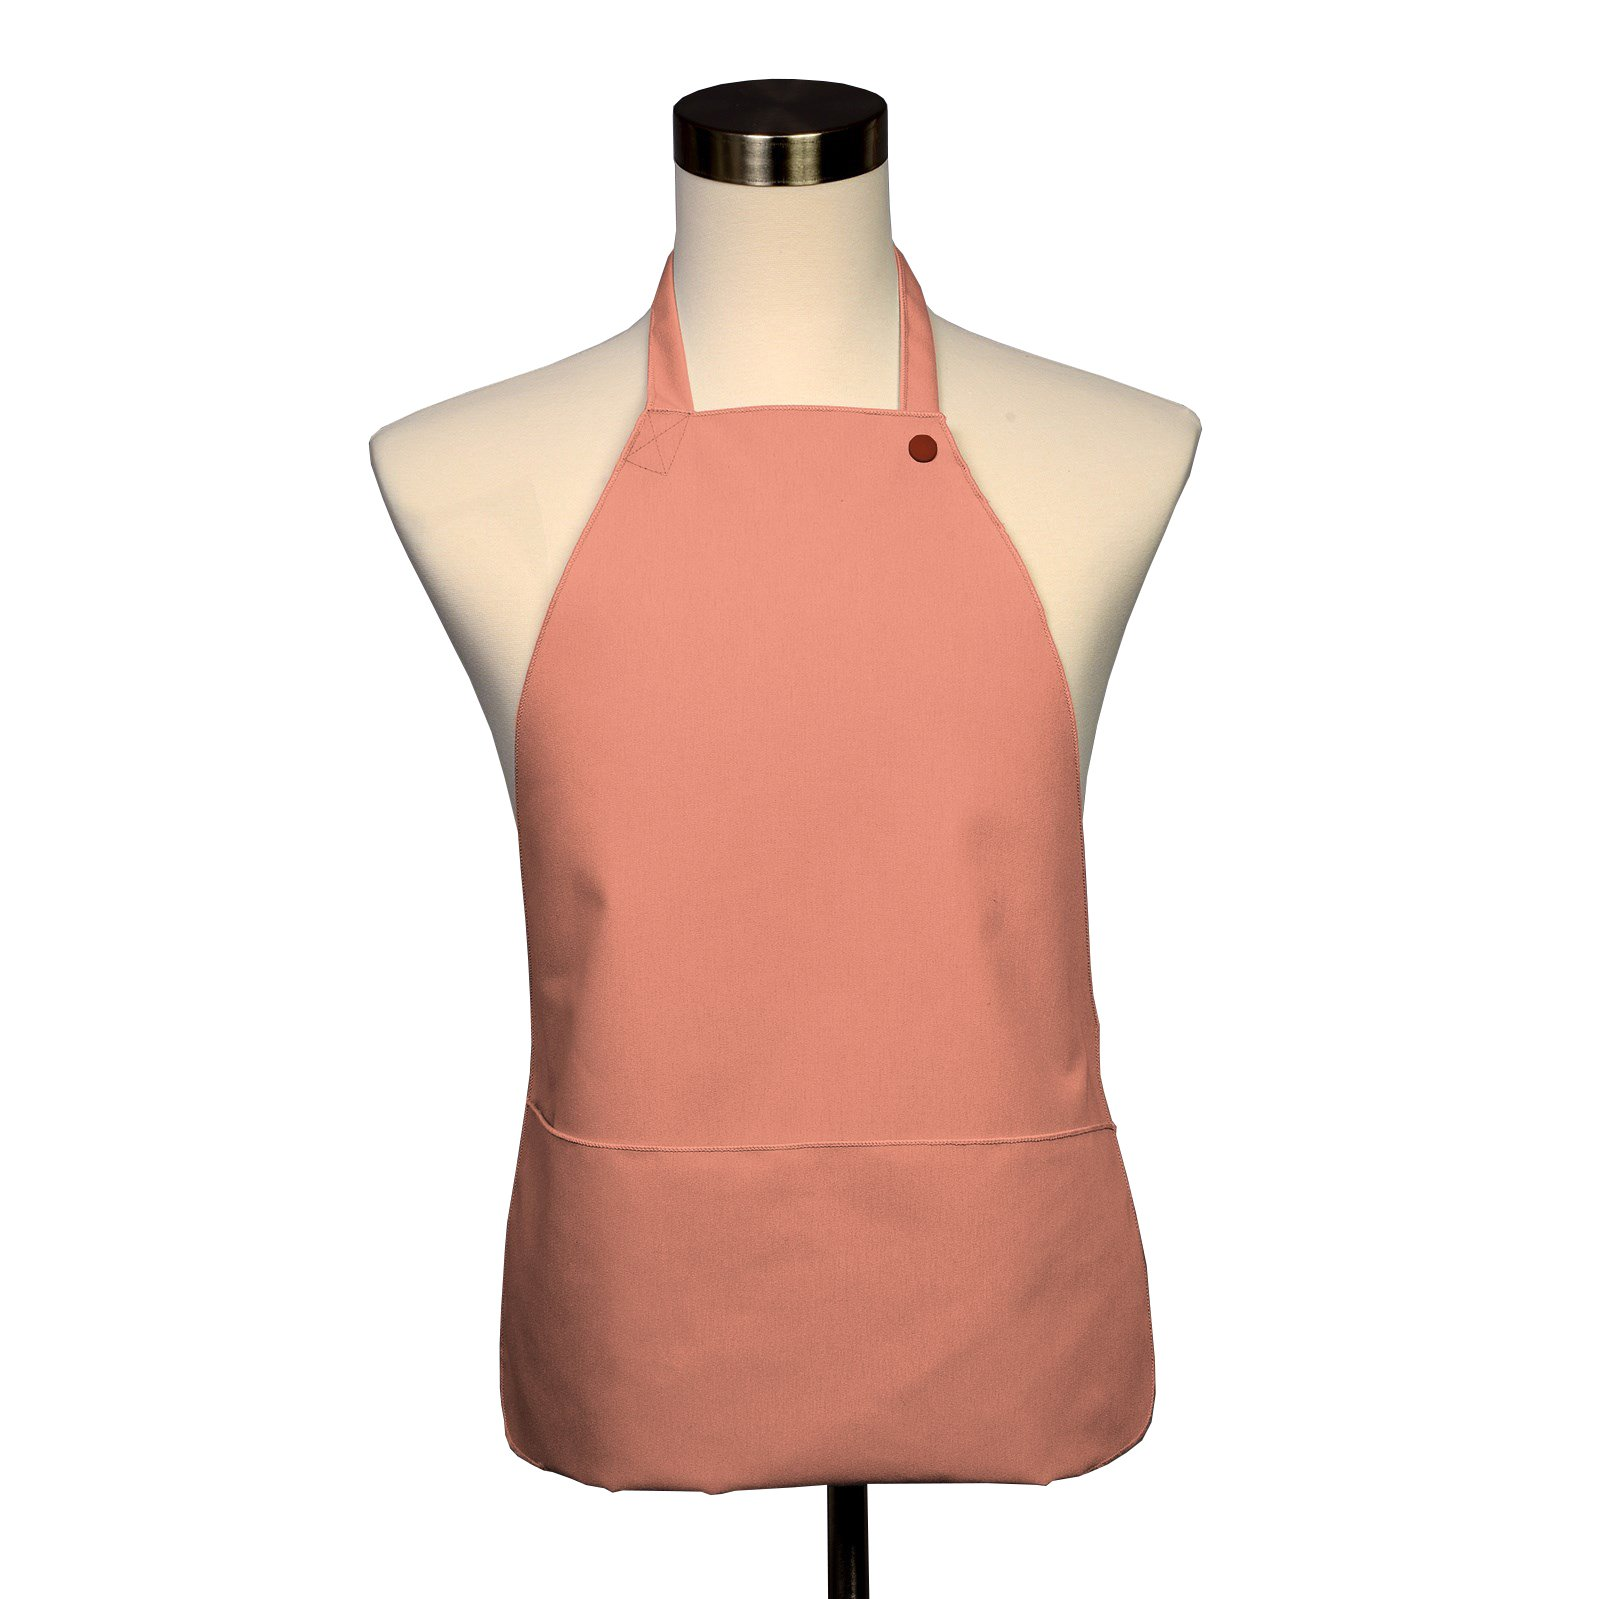 Adult Bib 10 Pack - Covered with Care Assorted Colors Available! (Peach)